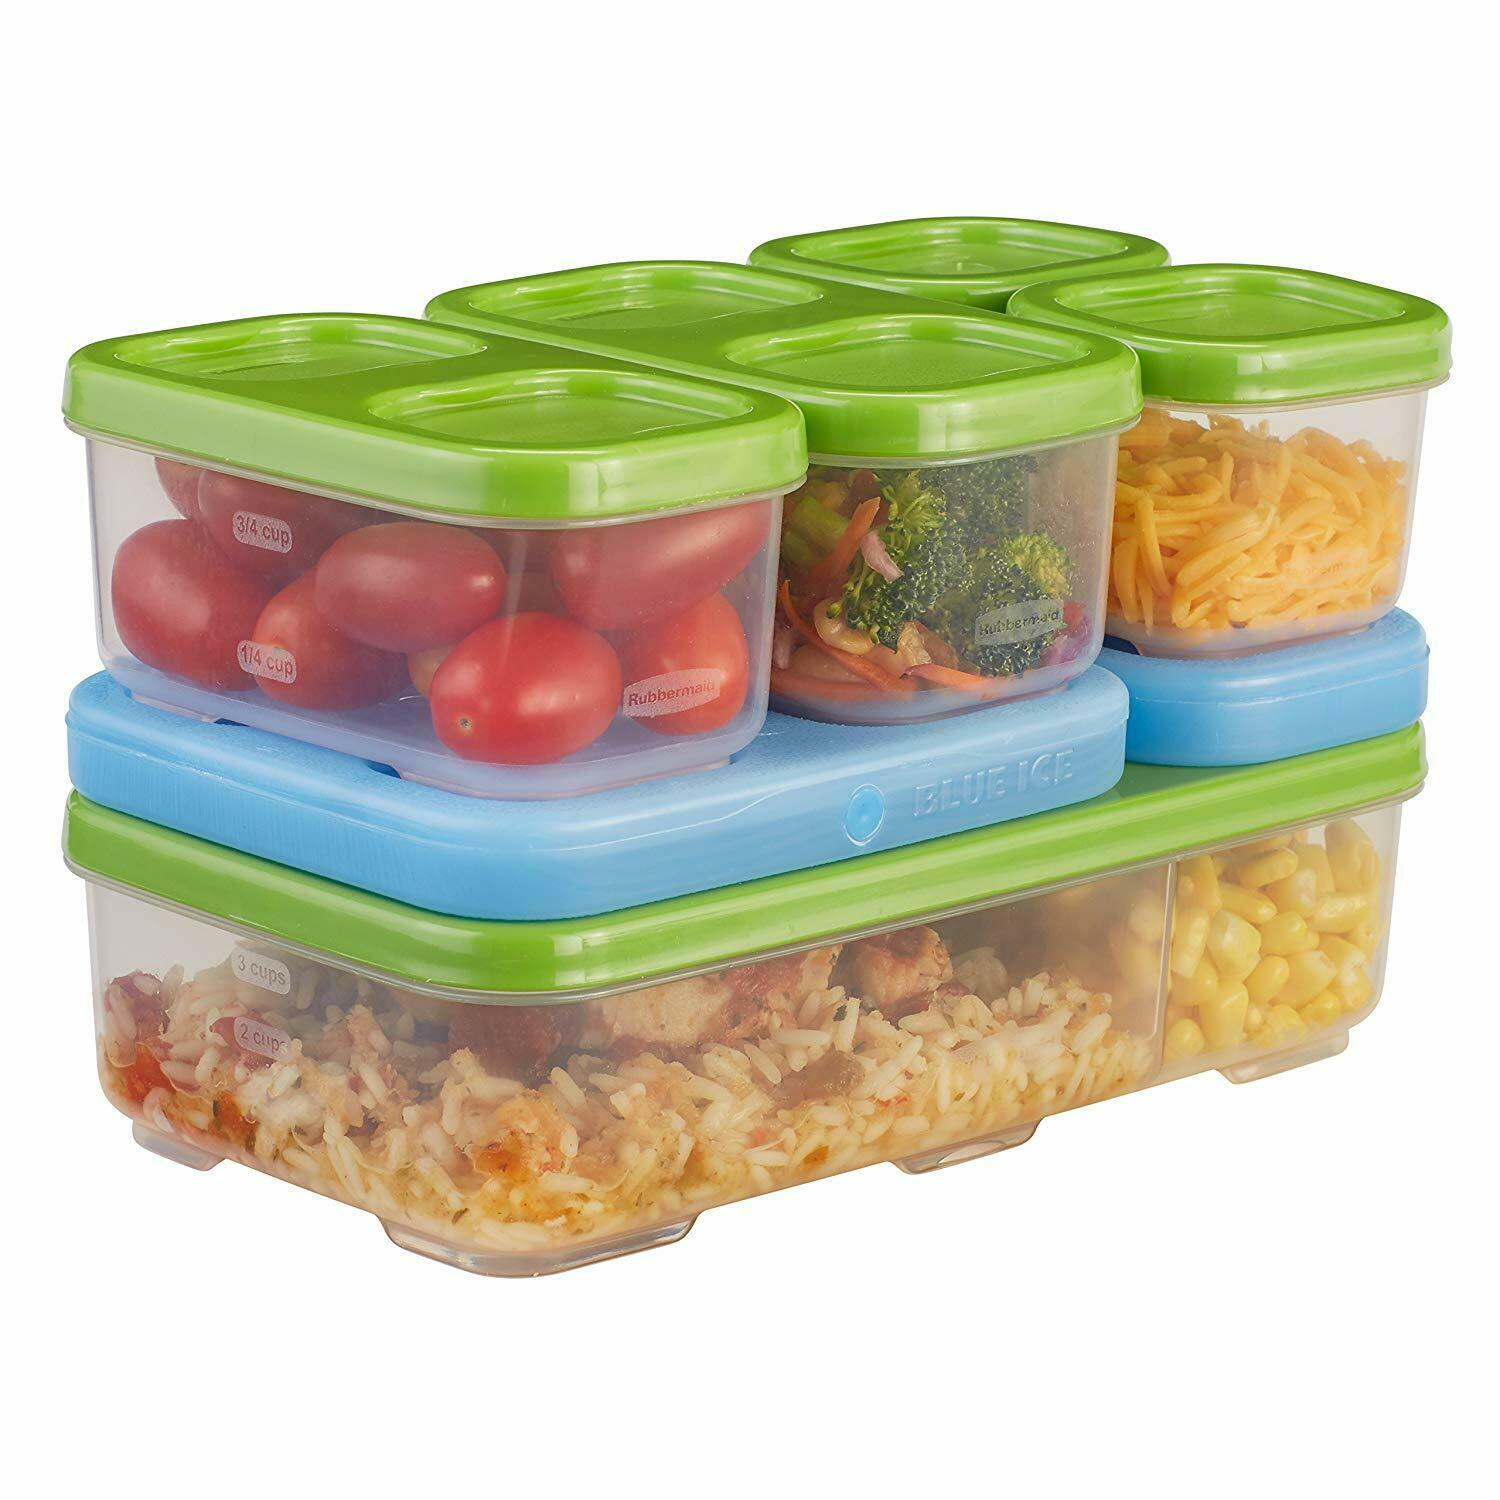 Rubbermaid Lunch Blox Entrée Kit Green Blue Ice Food Organized Compact BPA Free Home & Garden